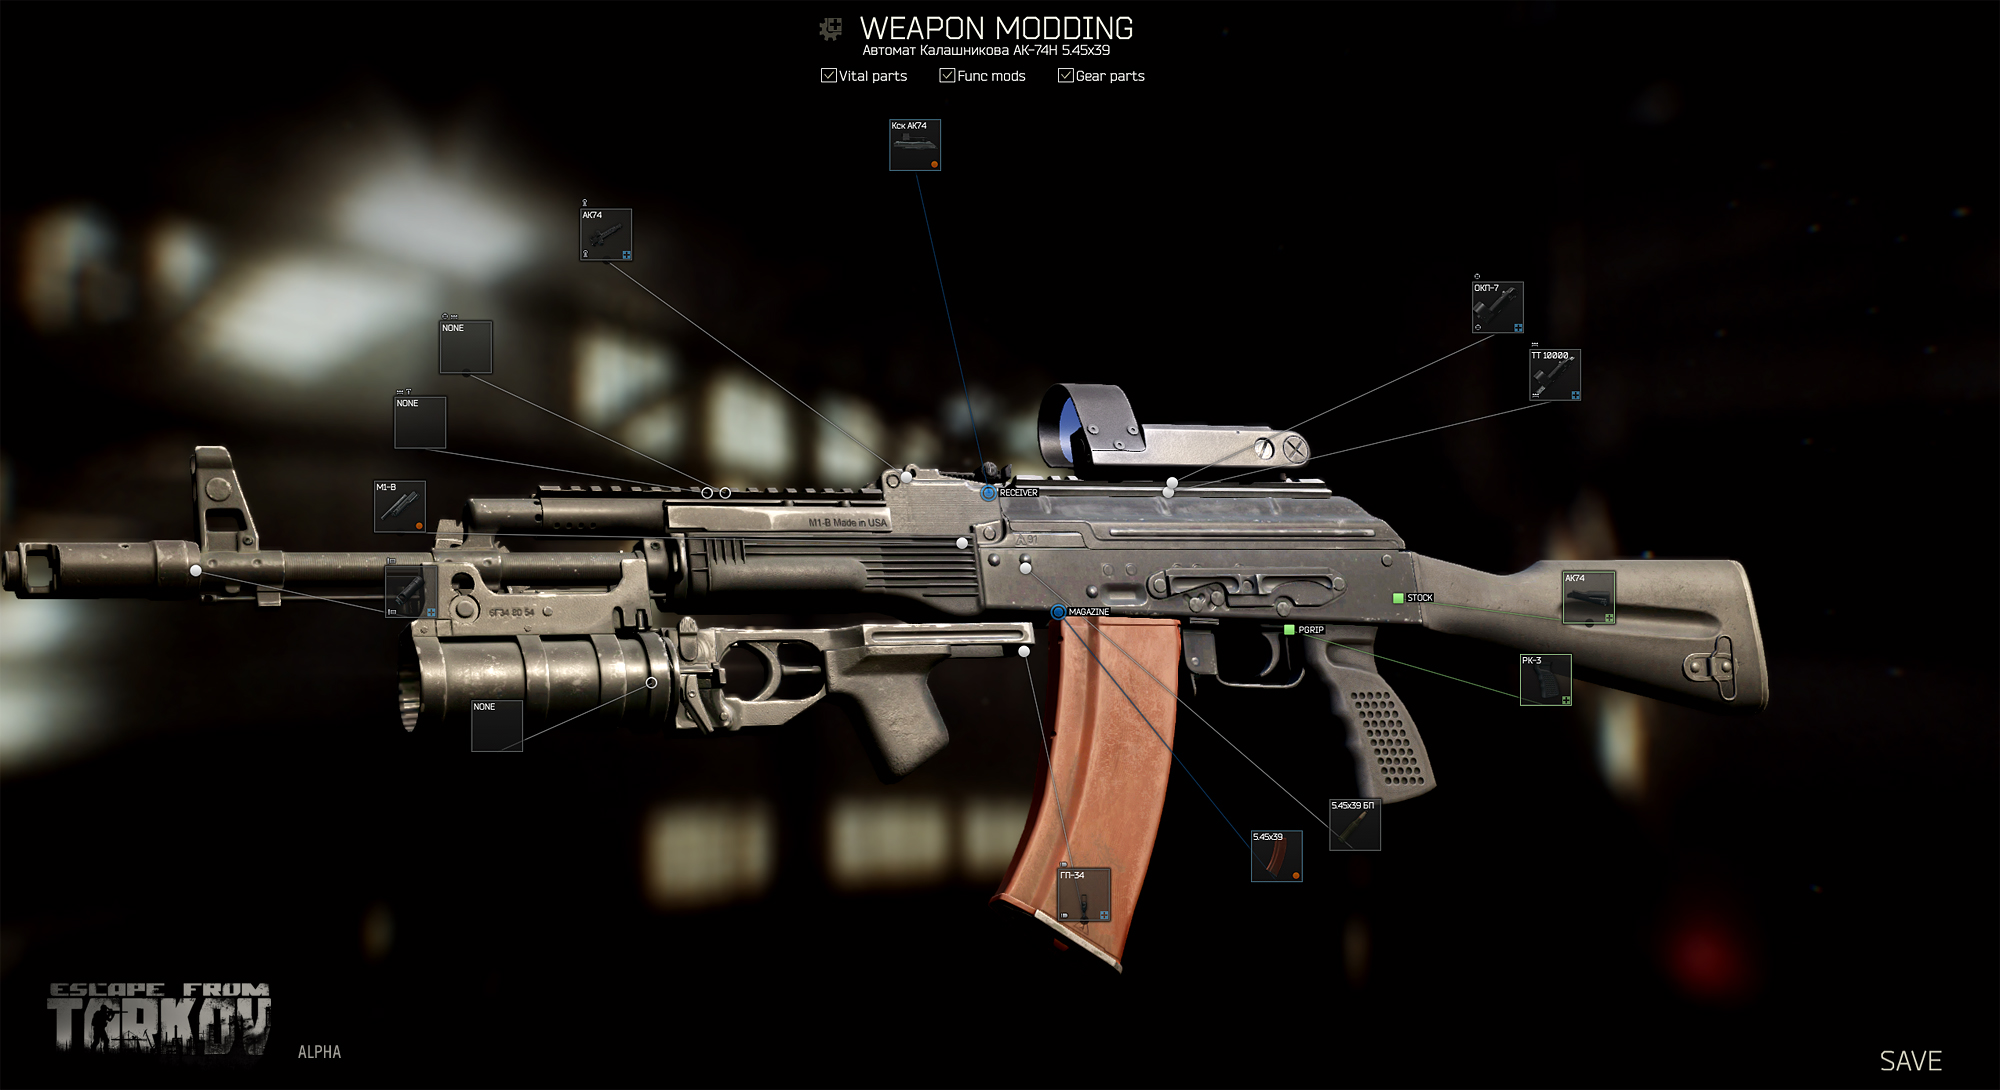 make your own map game with Escape From Tarkov Screens Weapons Pc Mac on Watch further Jurassic World Remote Control Robot Indominus Rex Toy as well Convert Vb Application To Mobile App also Maps And Atlases also Roblox Game Promo Code How To Play.